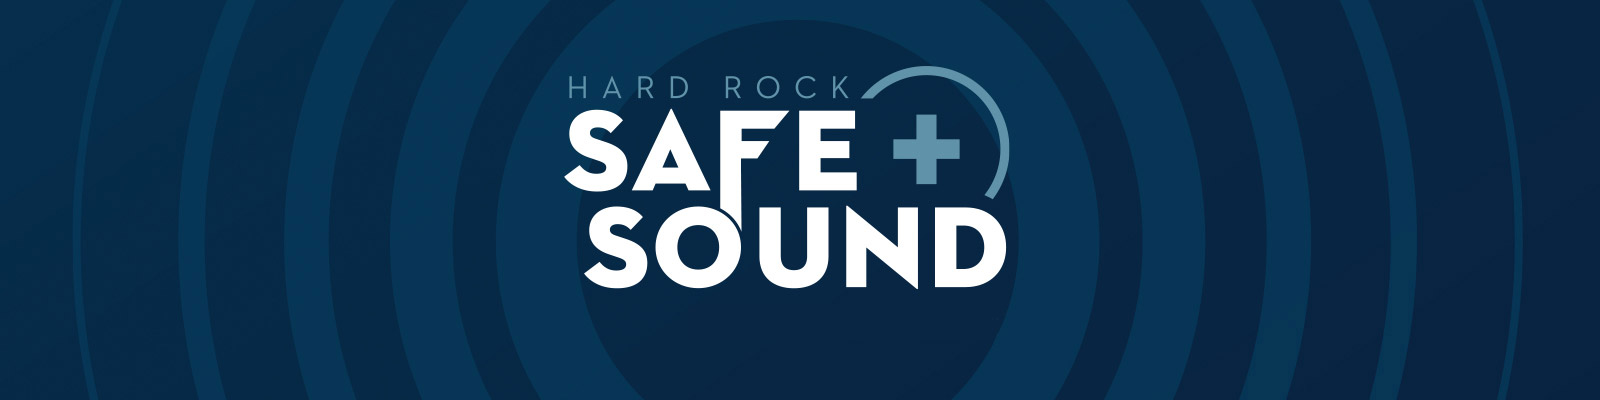 safe and sound hard rock casino sioux city